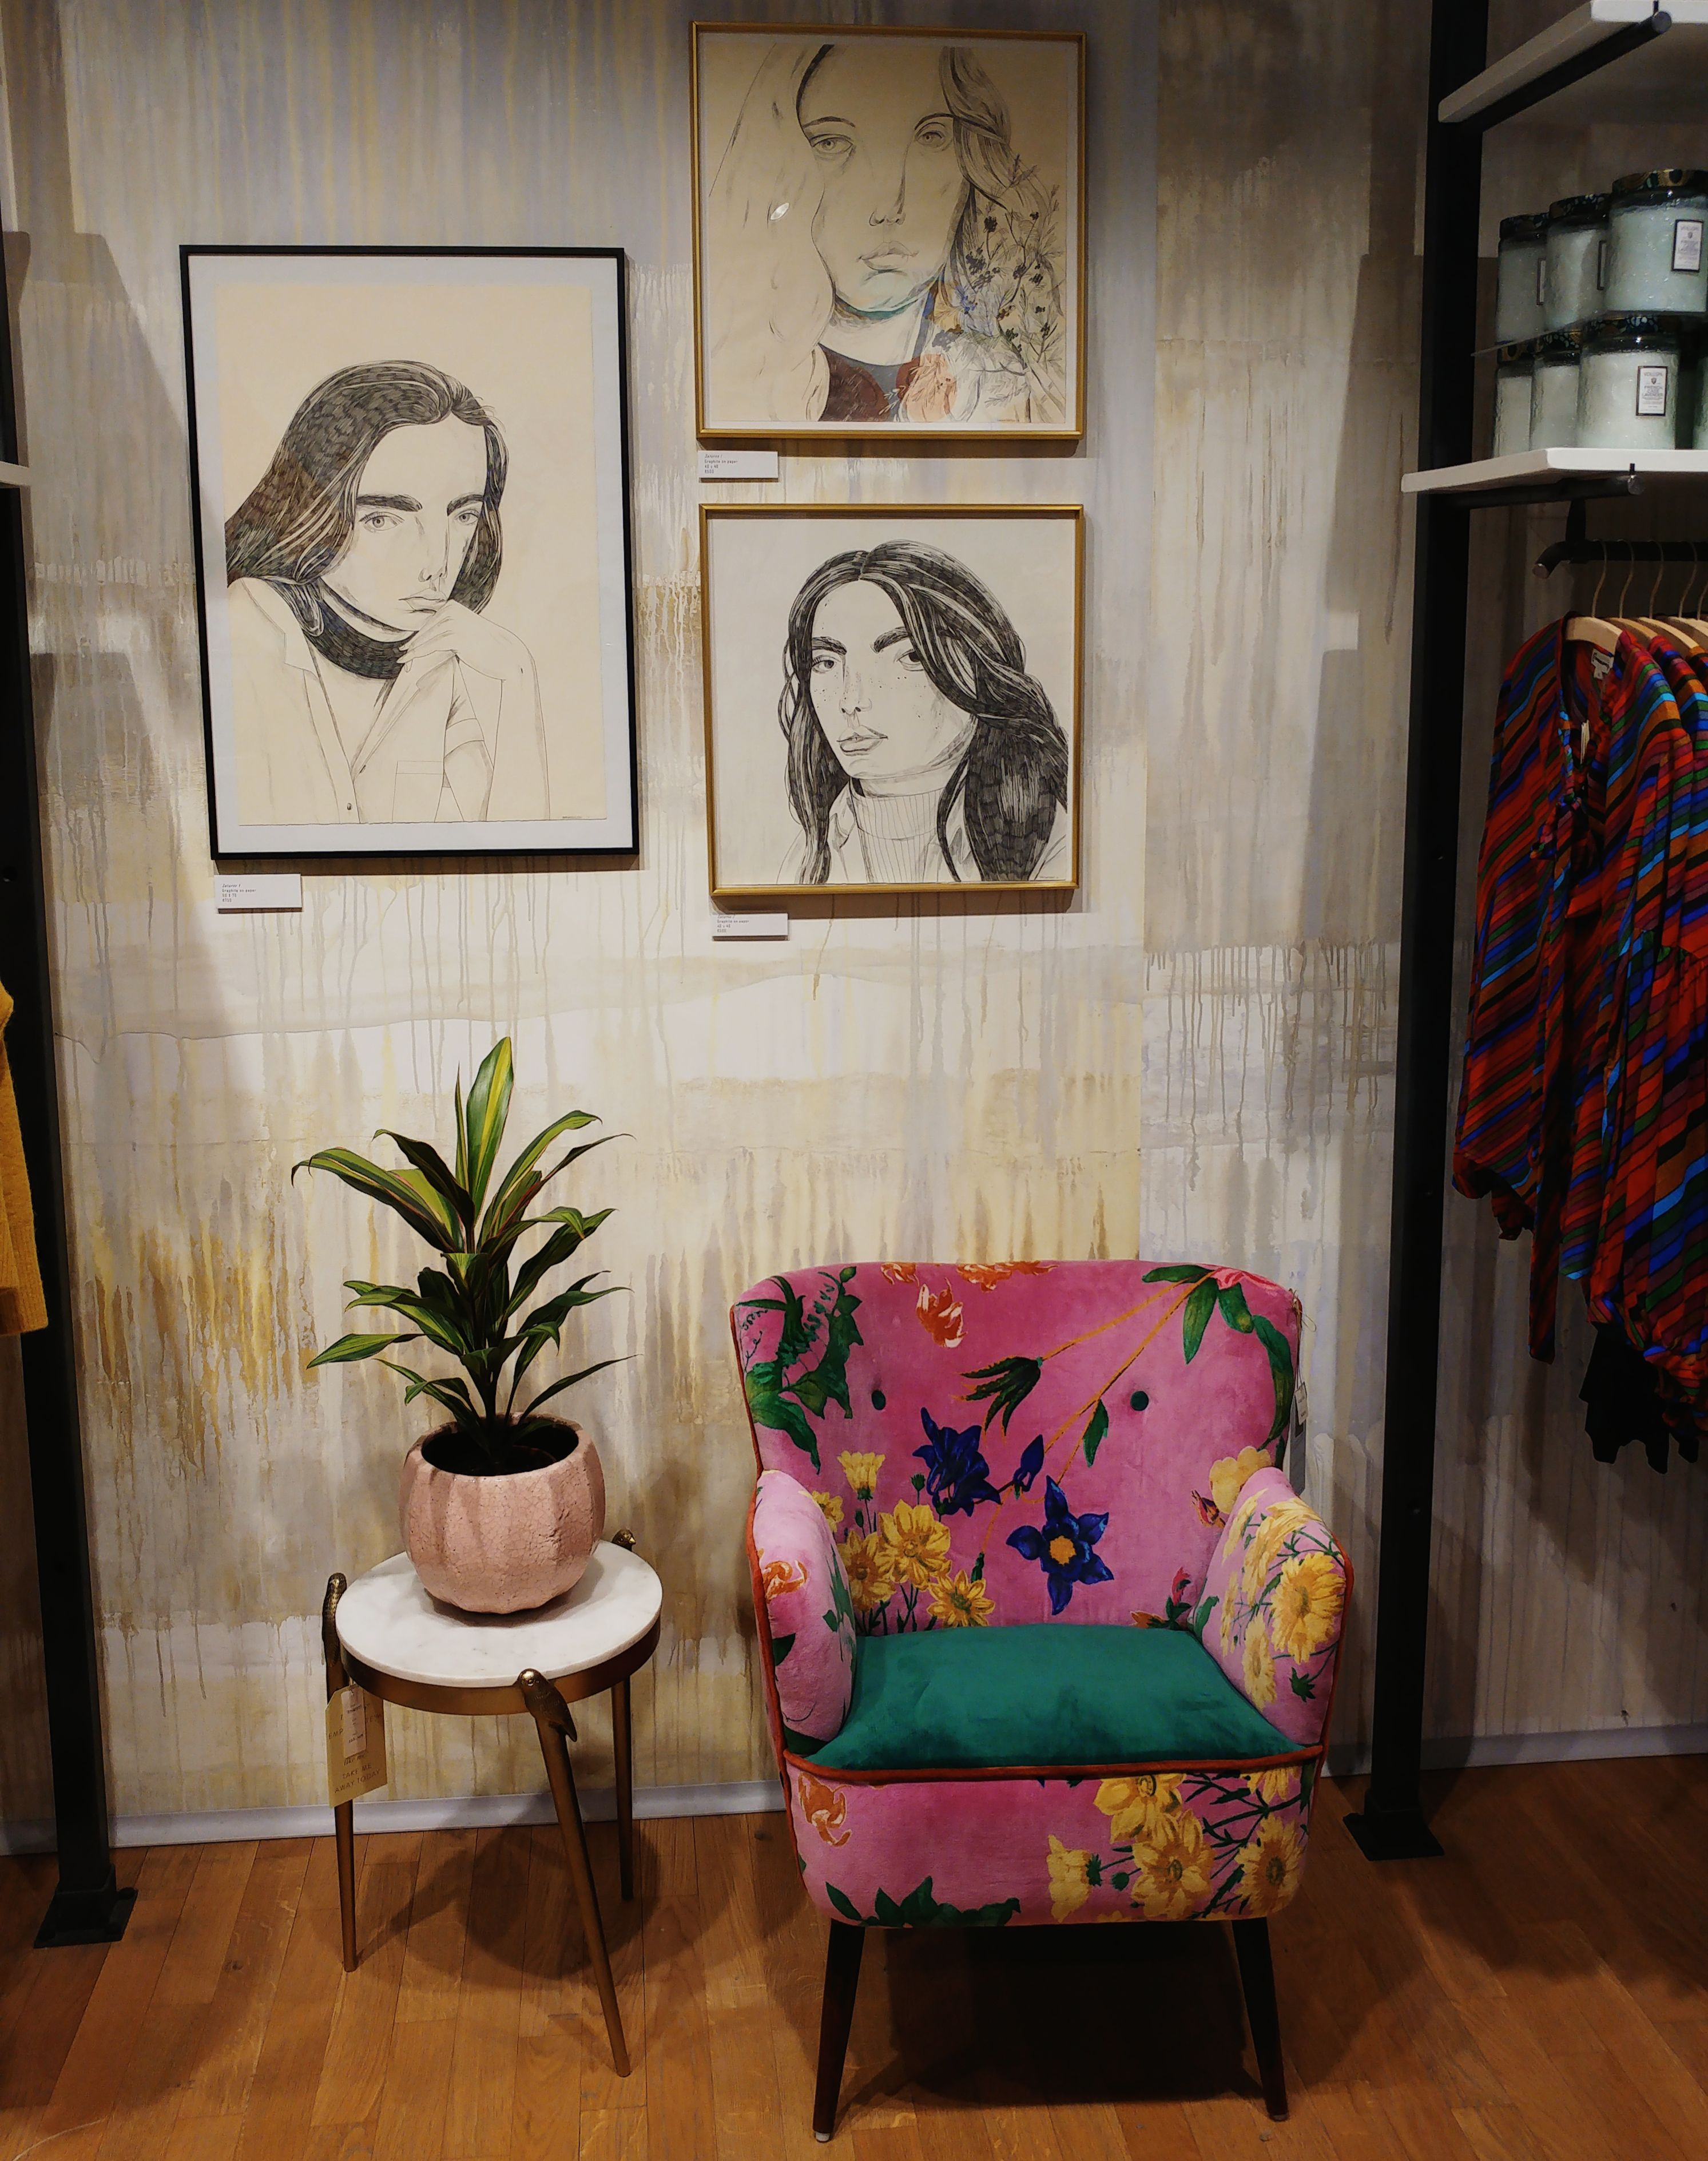 Anthropologie shop in Barcelona - bohemian and eclectic interior decor